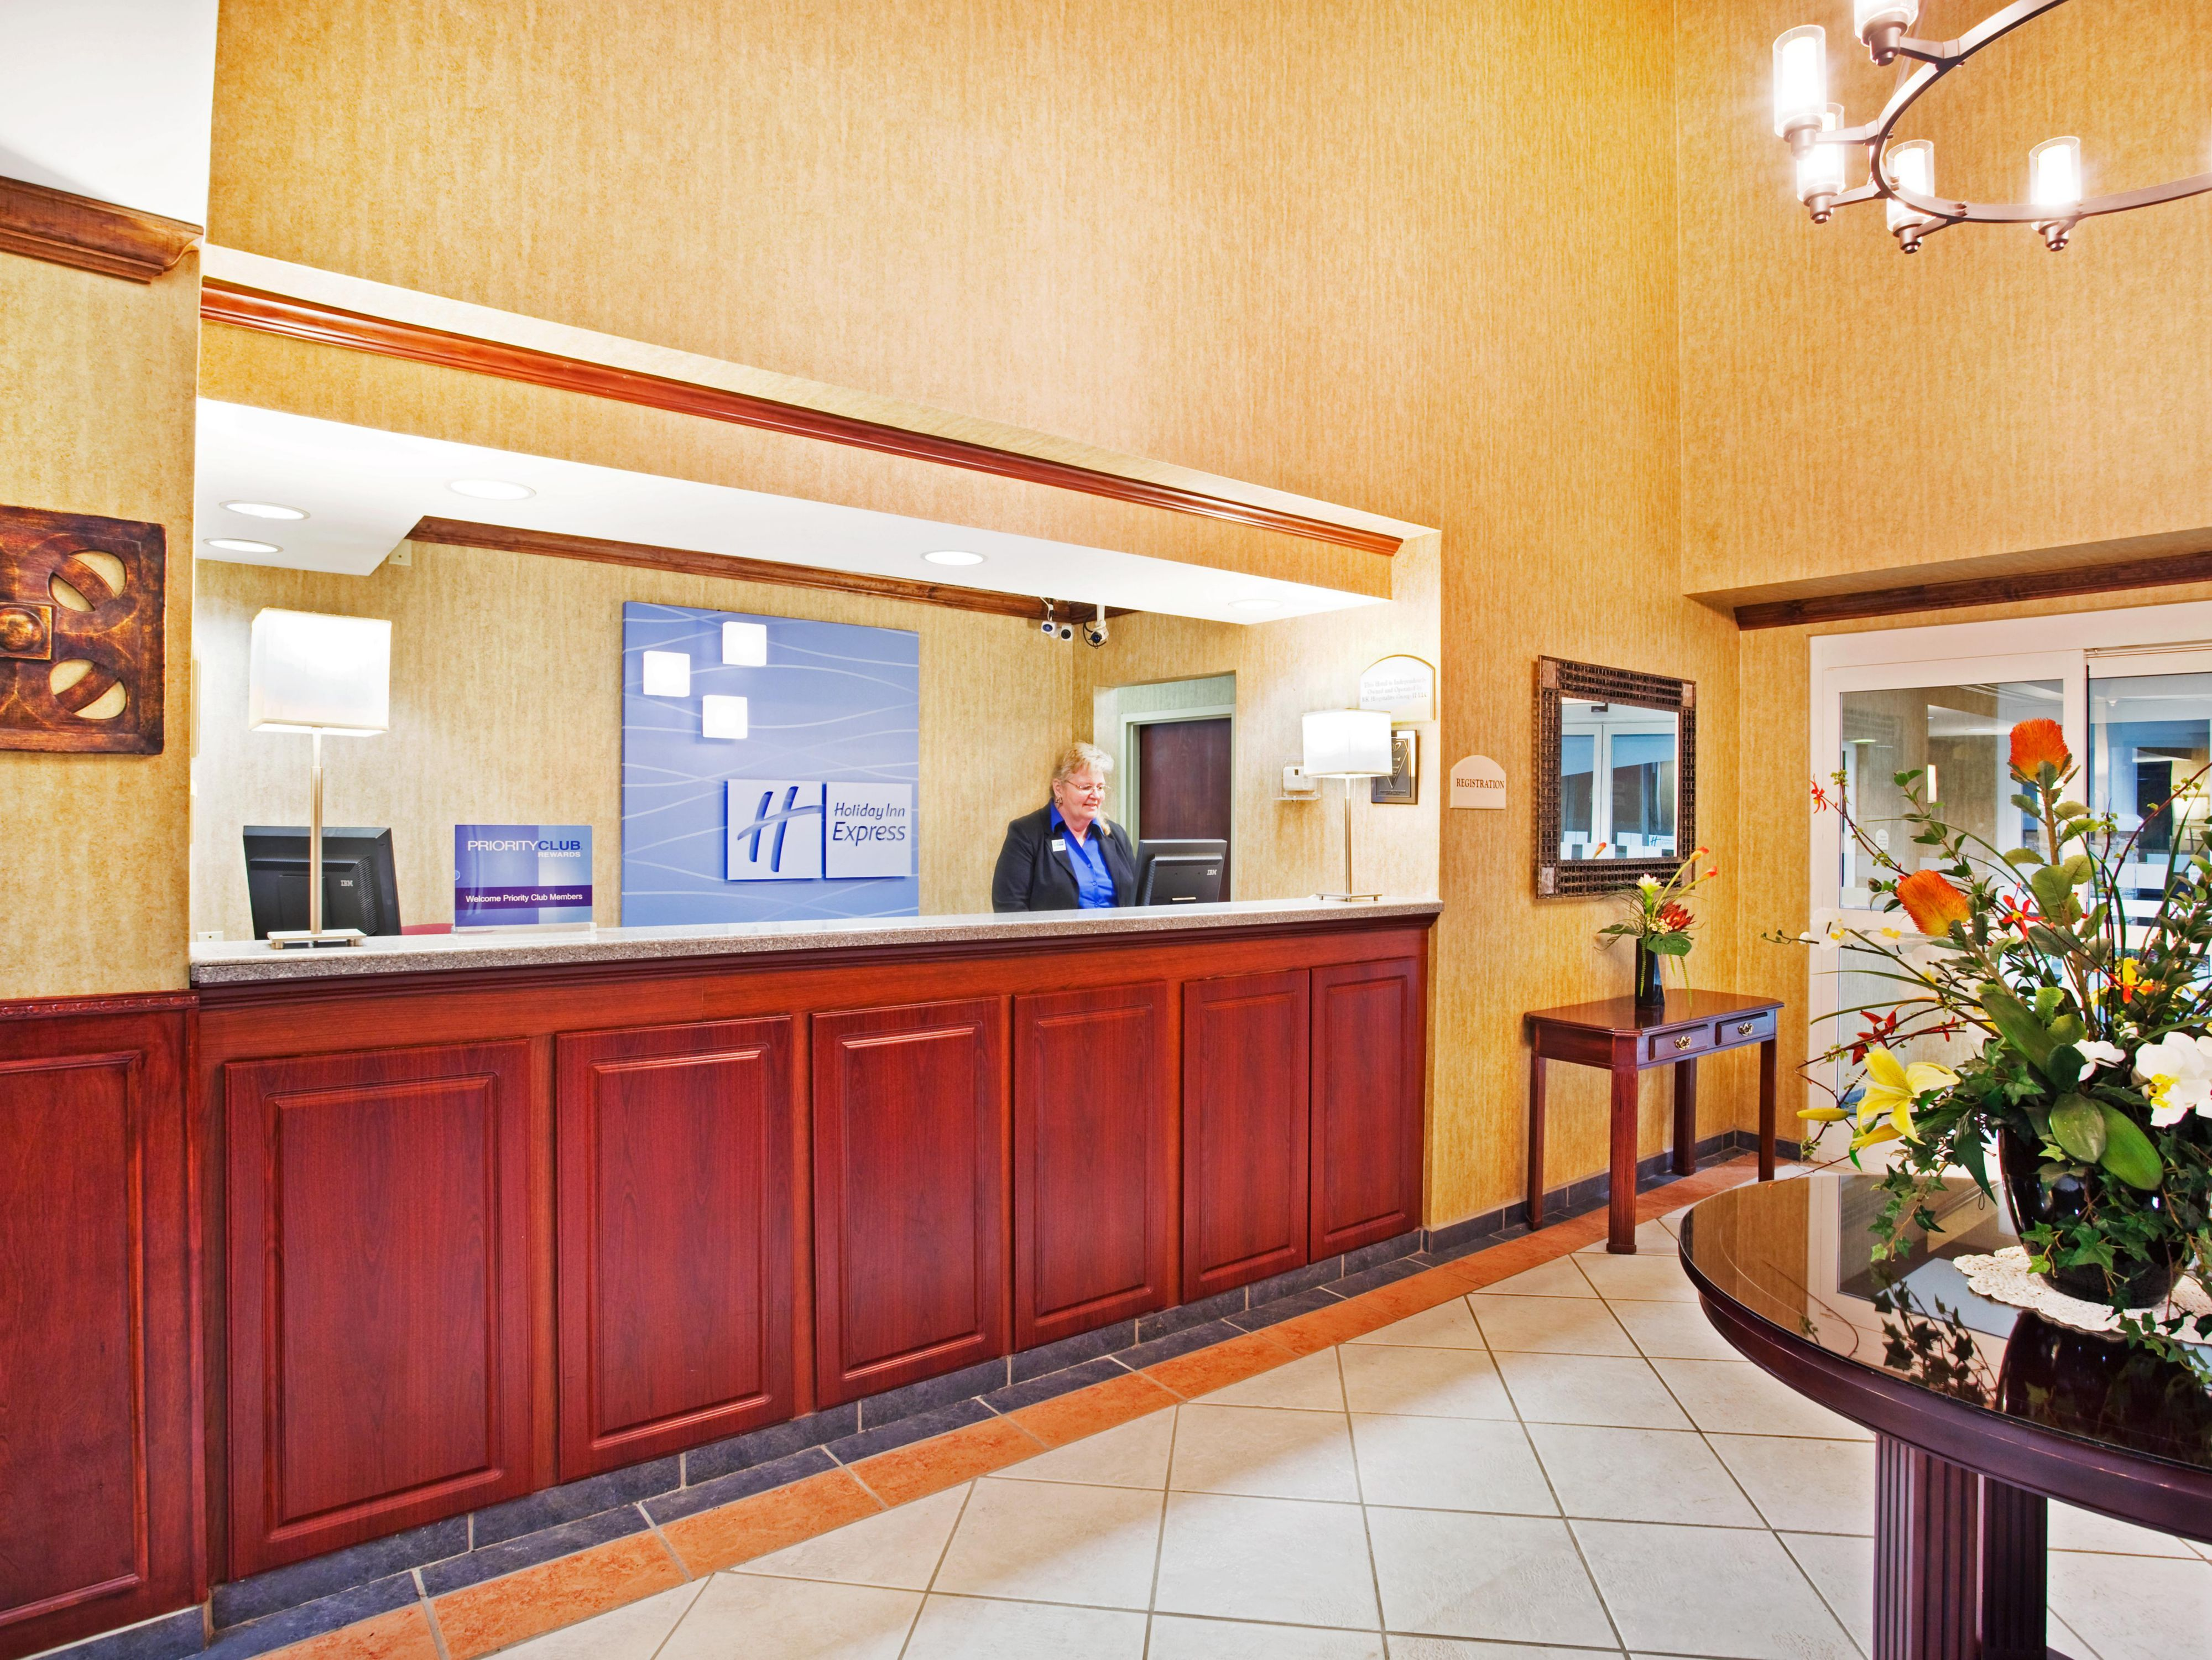 Find Charlotte Hotels | Top 27 Hotels in Charlotte, NC by IHG